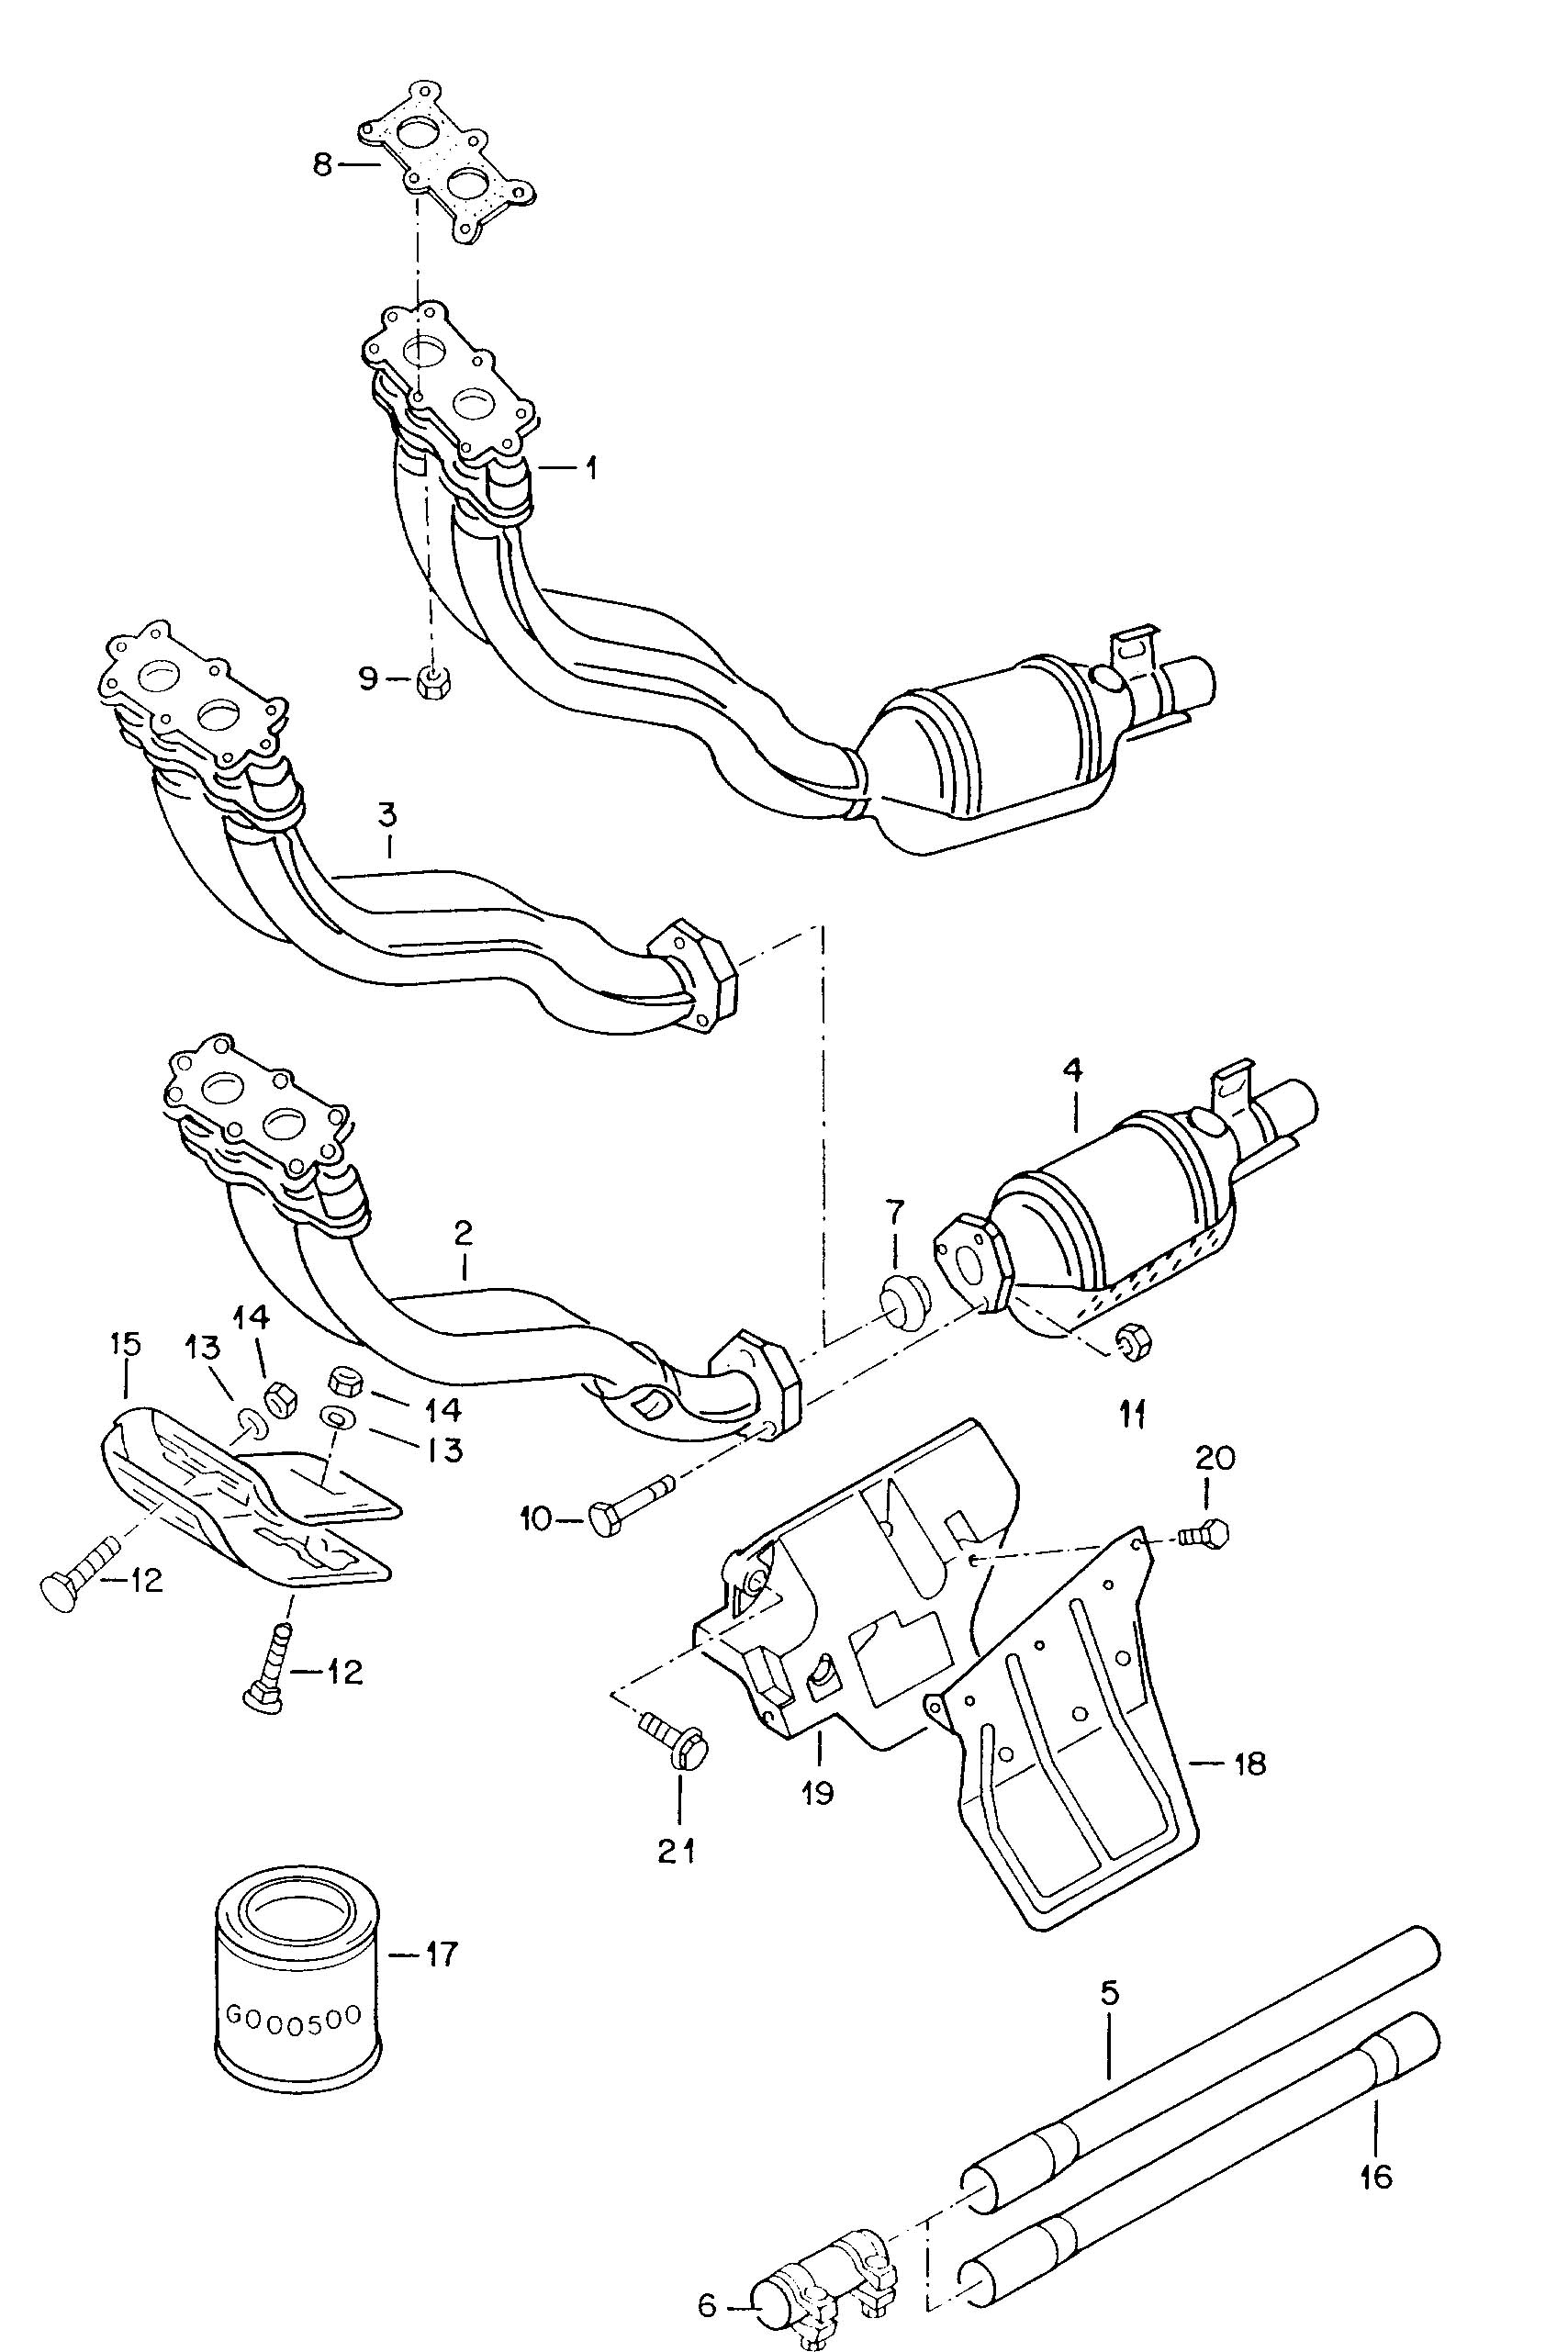 2001 vw cabrio ignition coil wiring diagrams